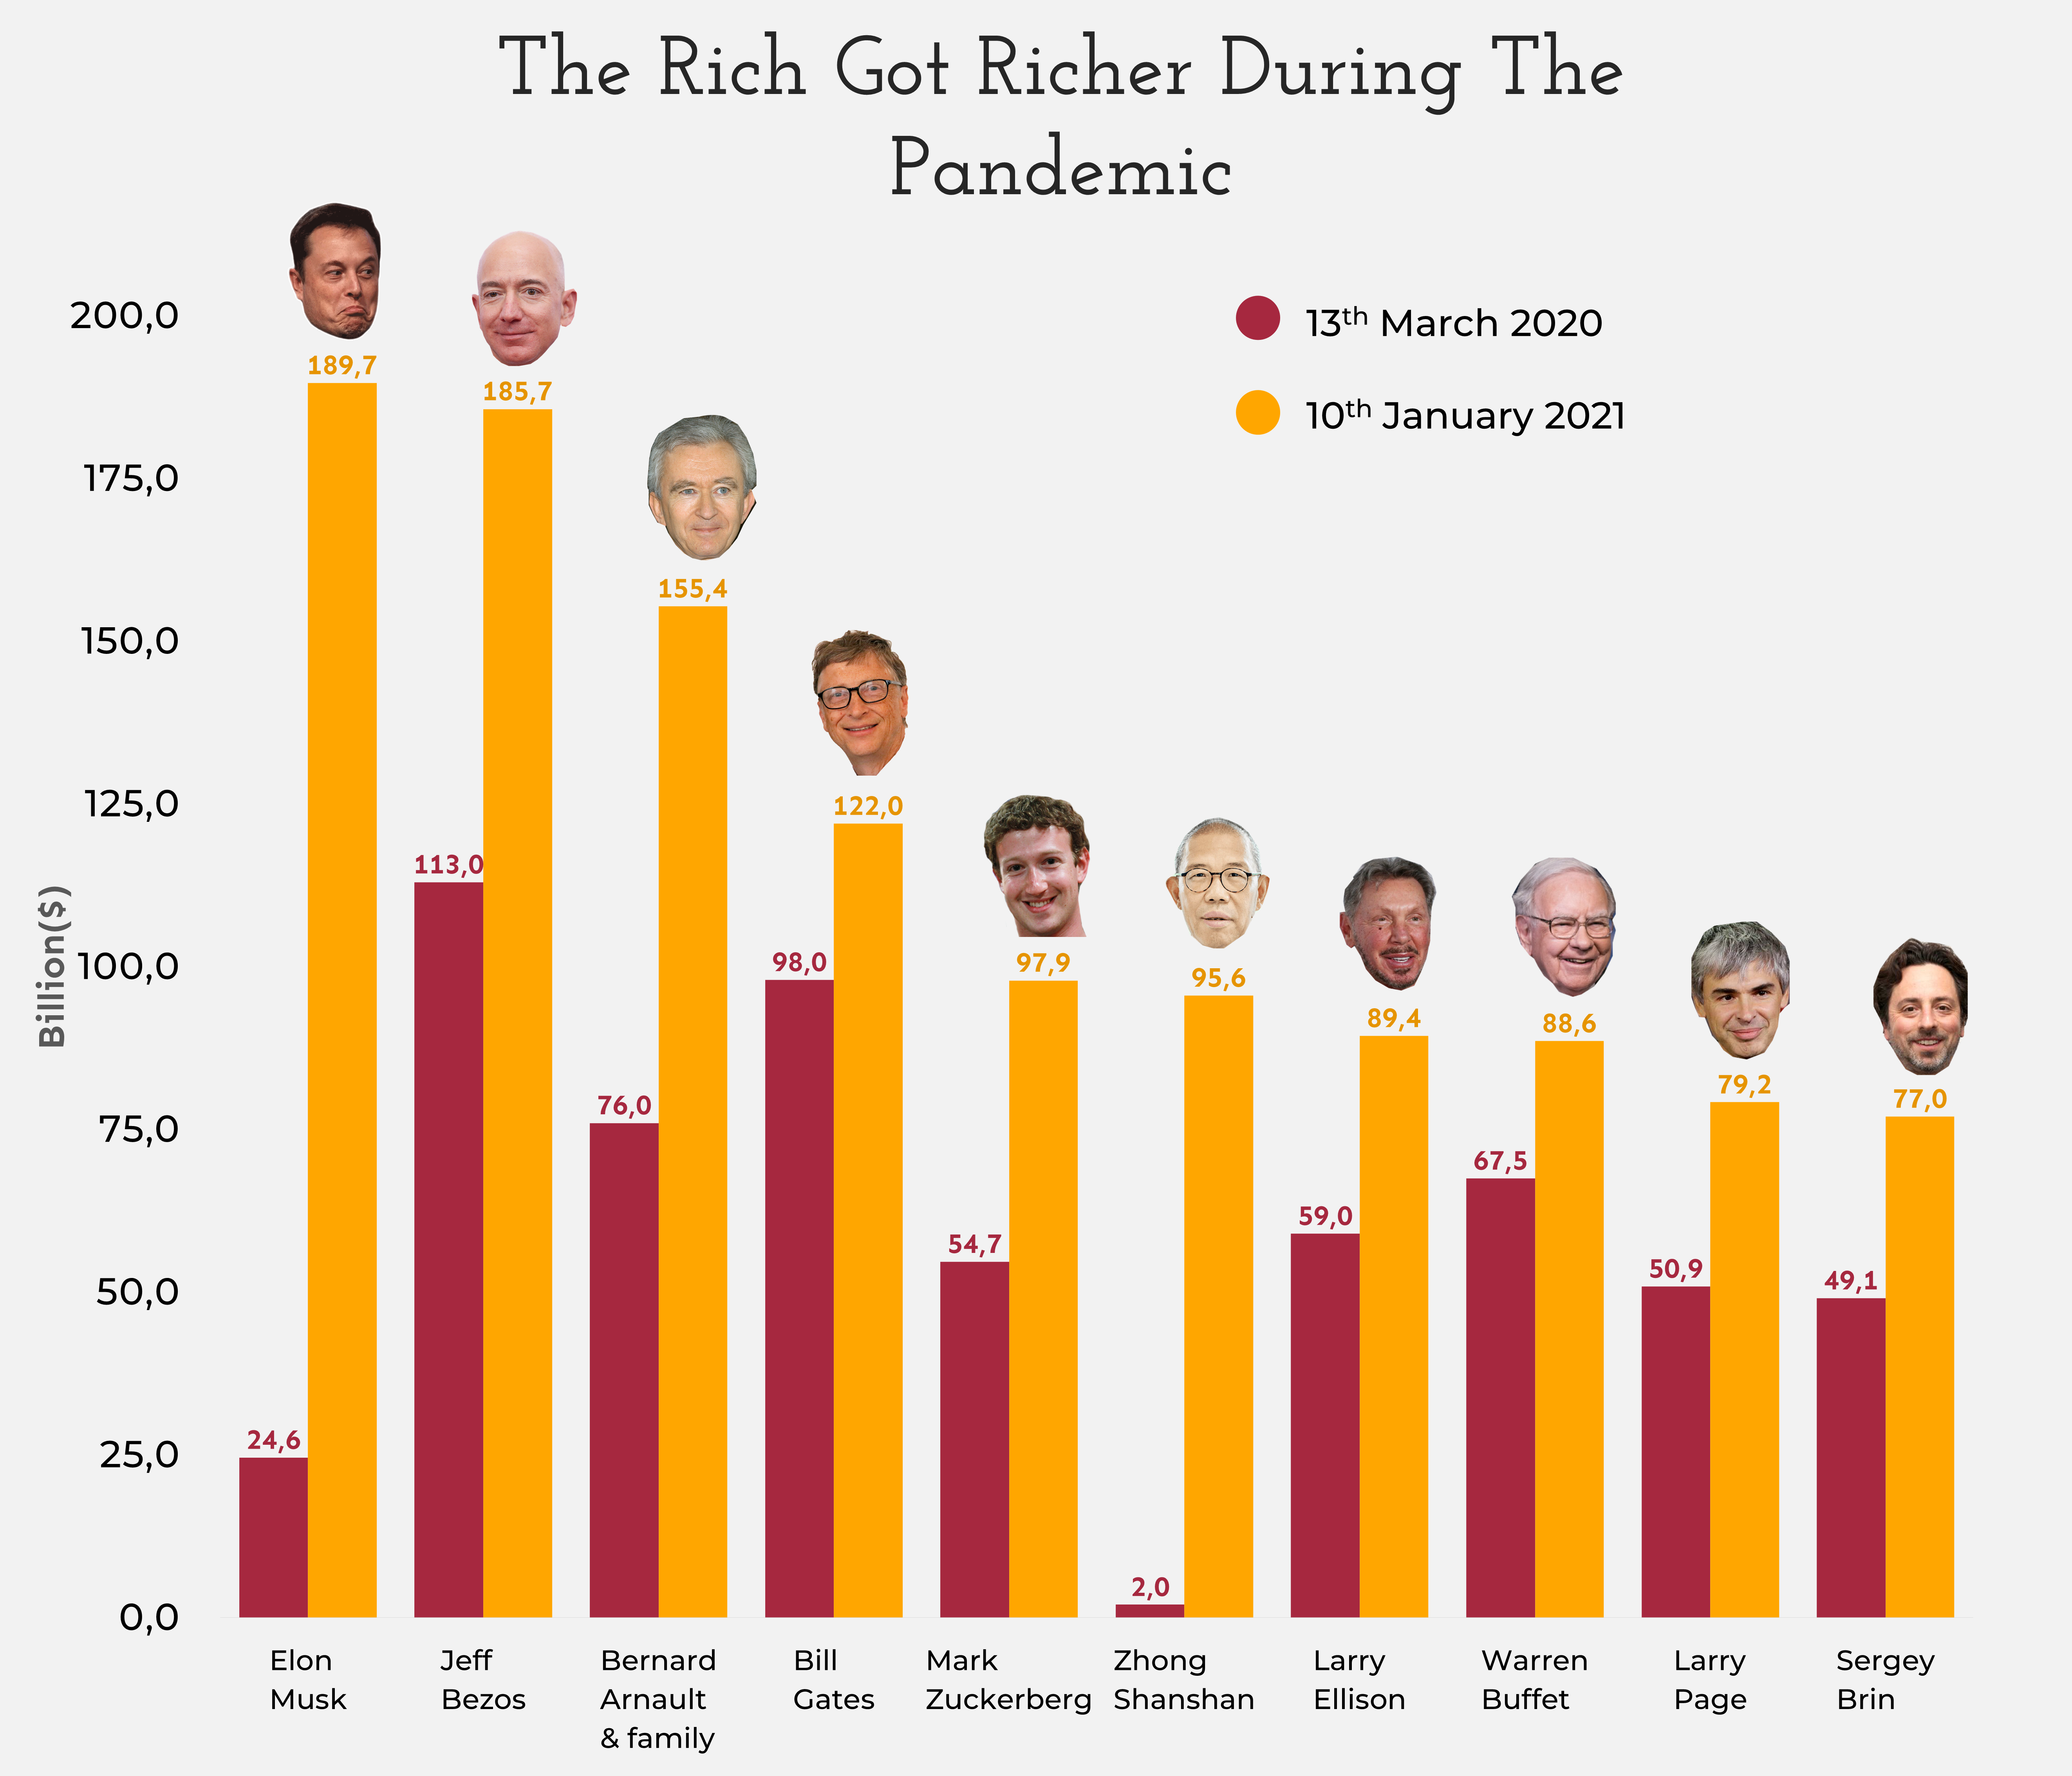 The rich got richer, Jan 2021